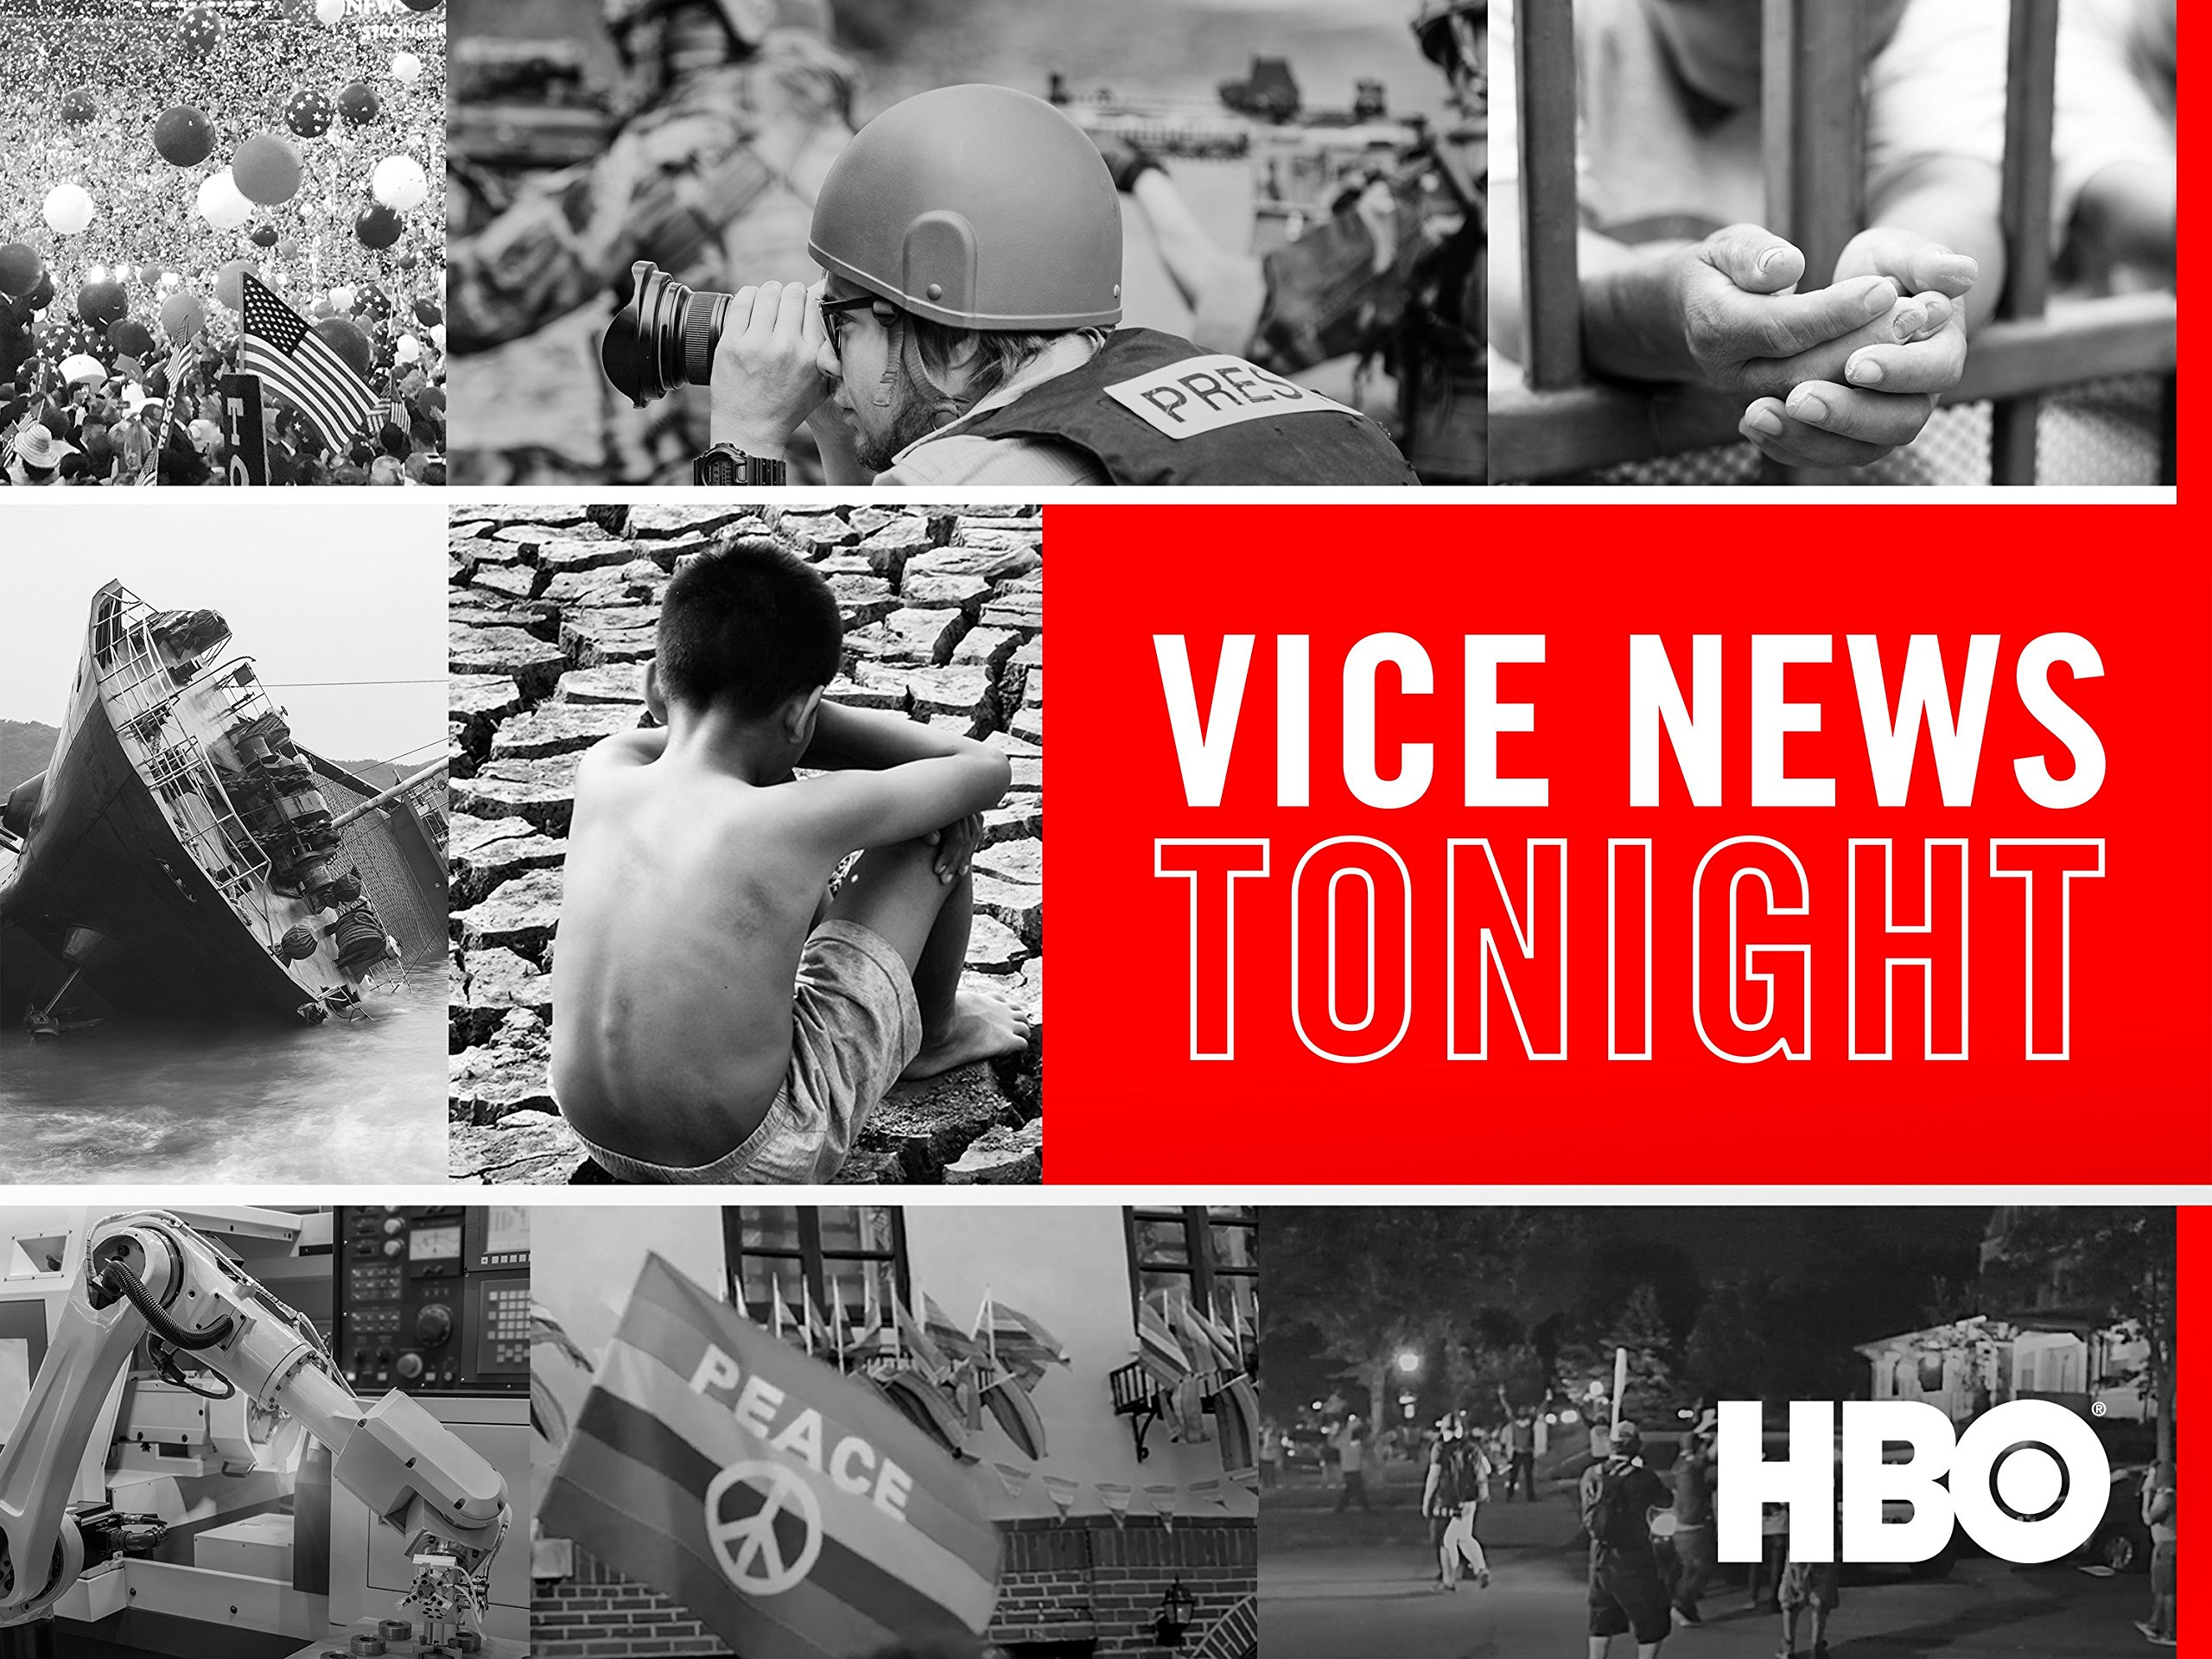 Amazon.com: Watch VICE News Tonight - Season 1 | Prime Video